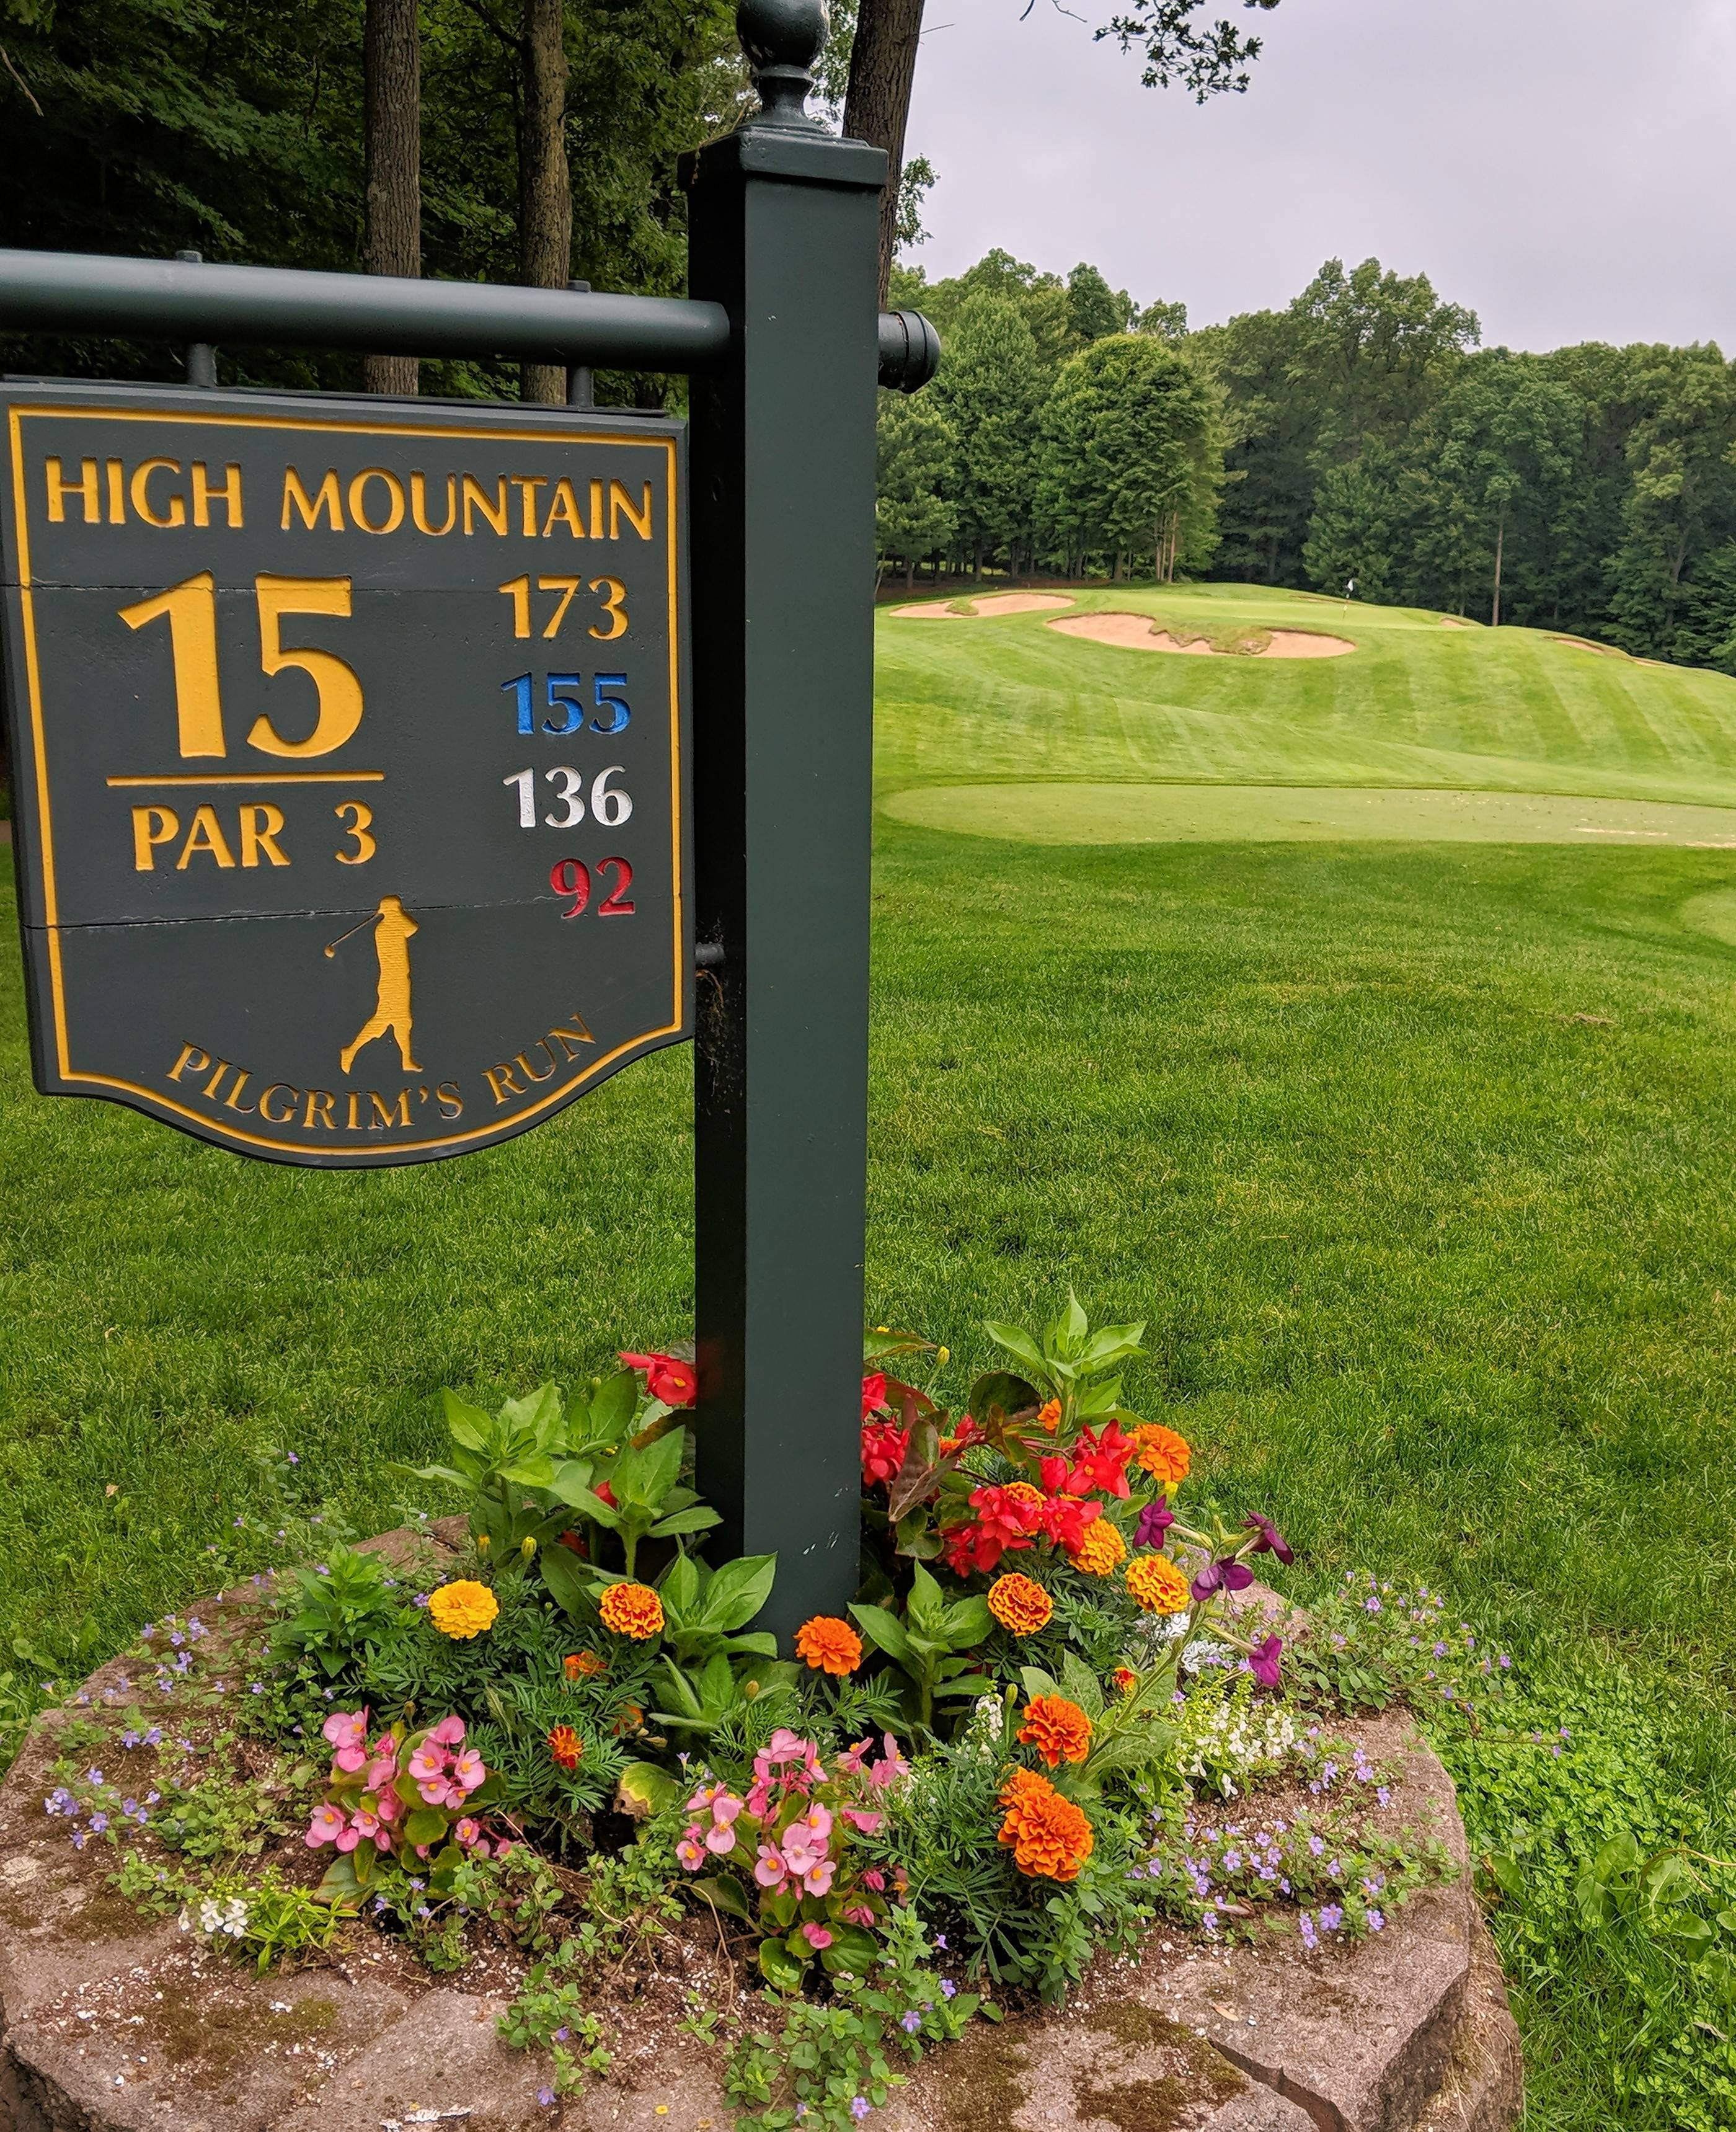 Pilgrim's Run Golf Club, a popular public course in Pierson, Michigan, stands out because of all its special touches.